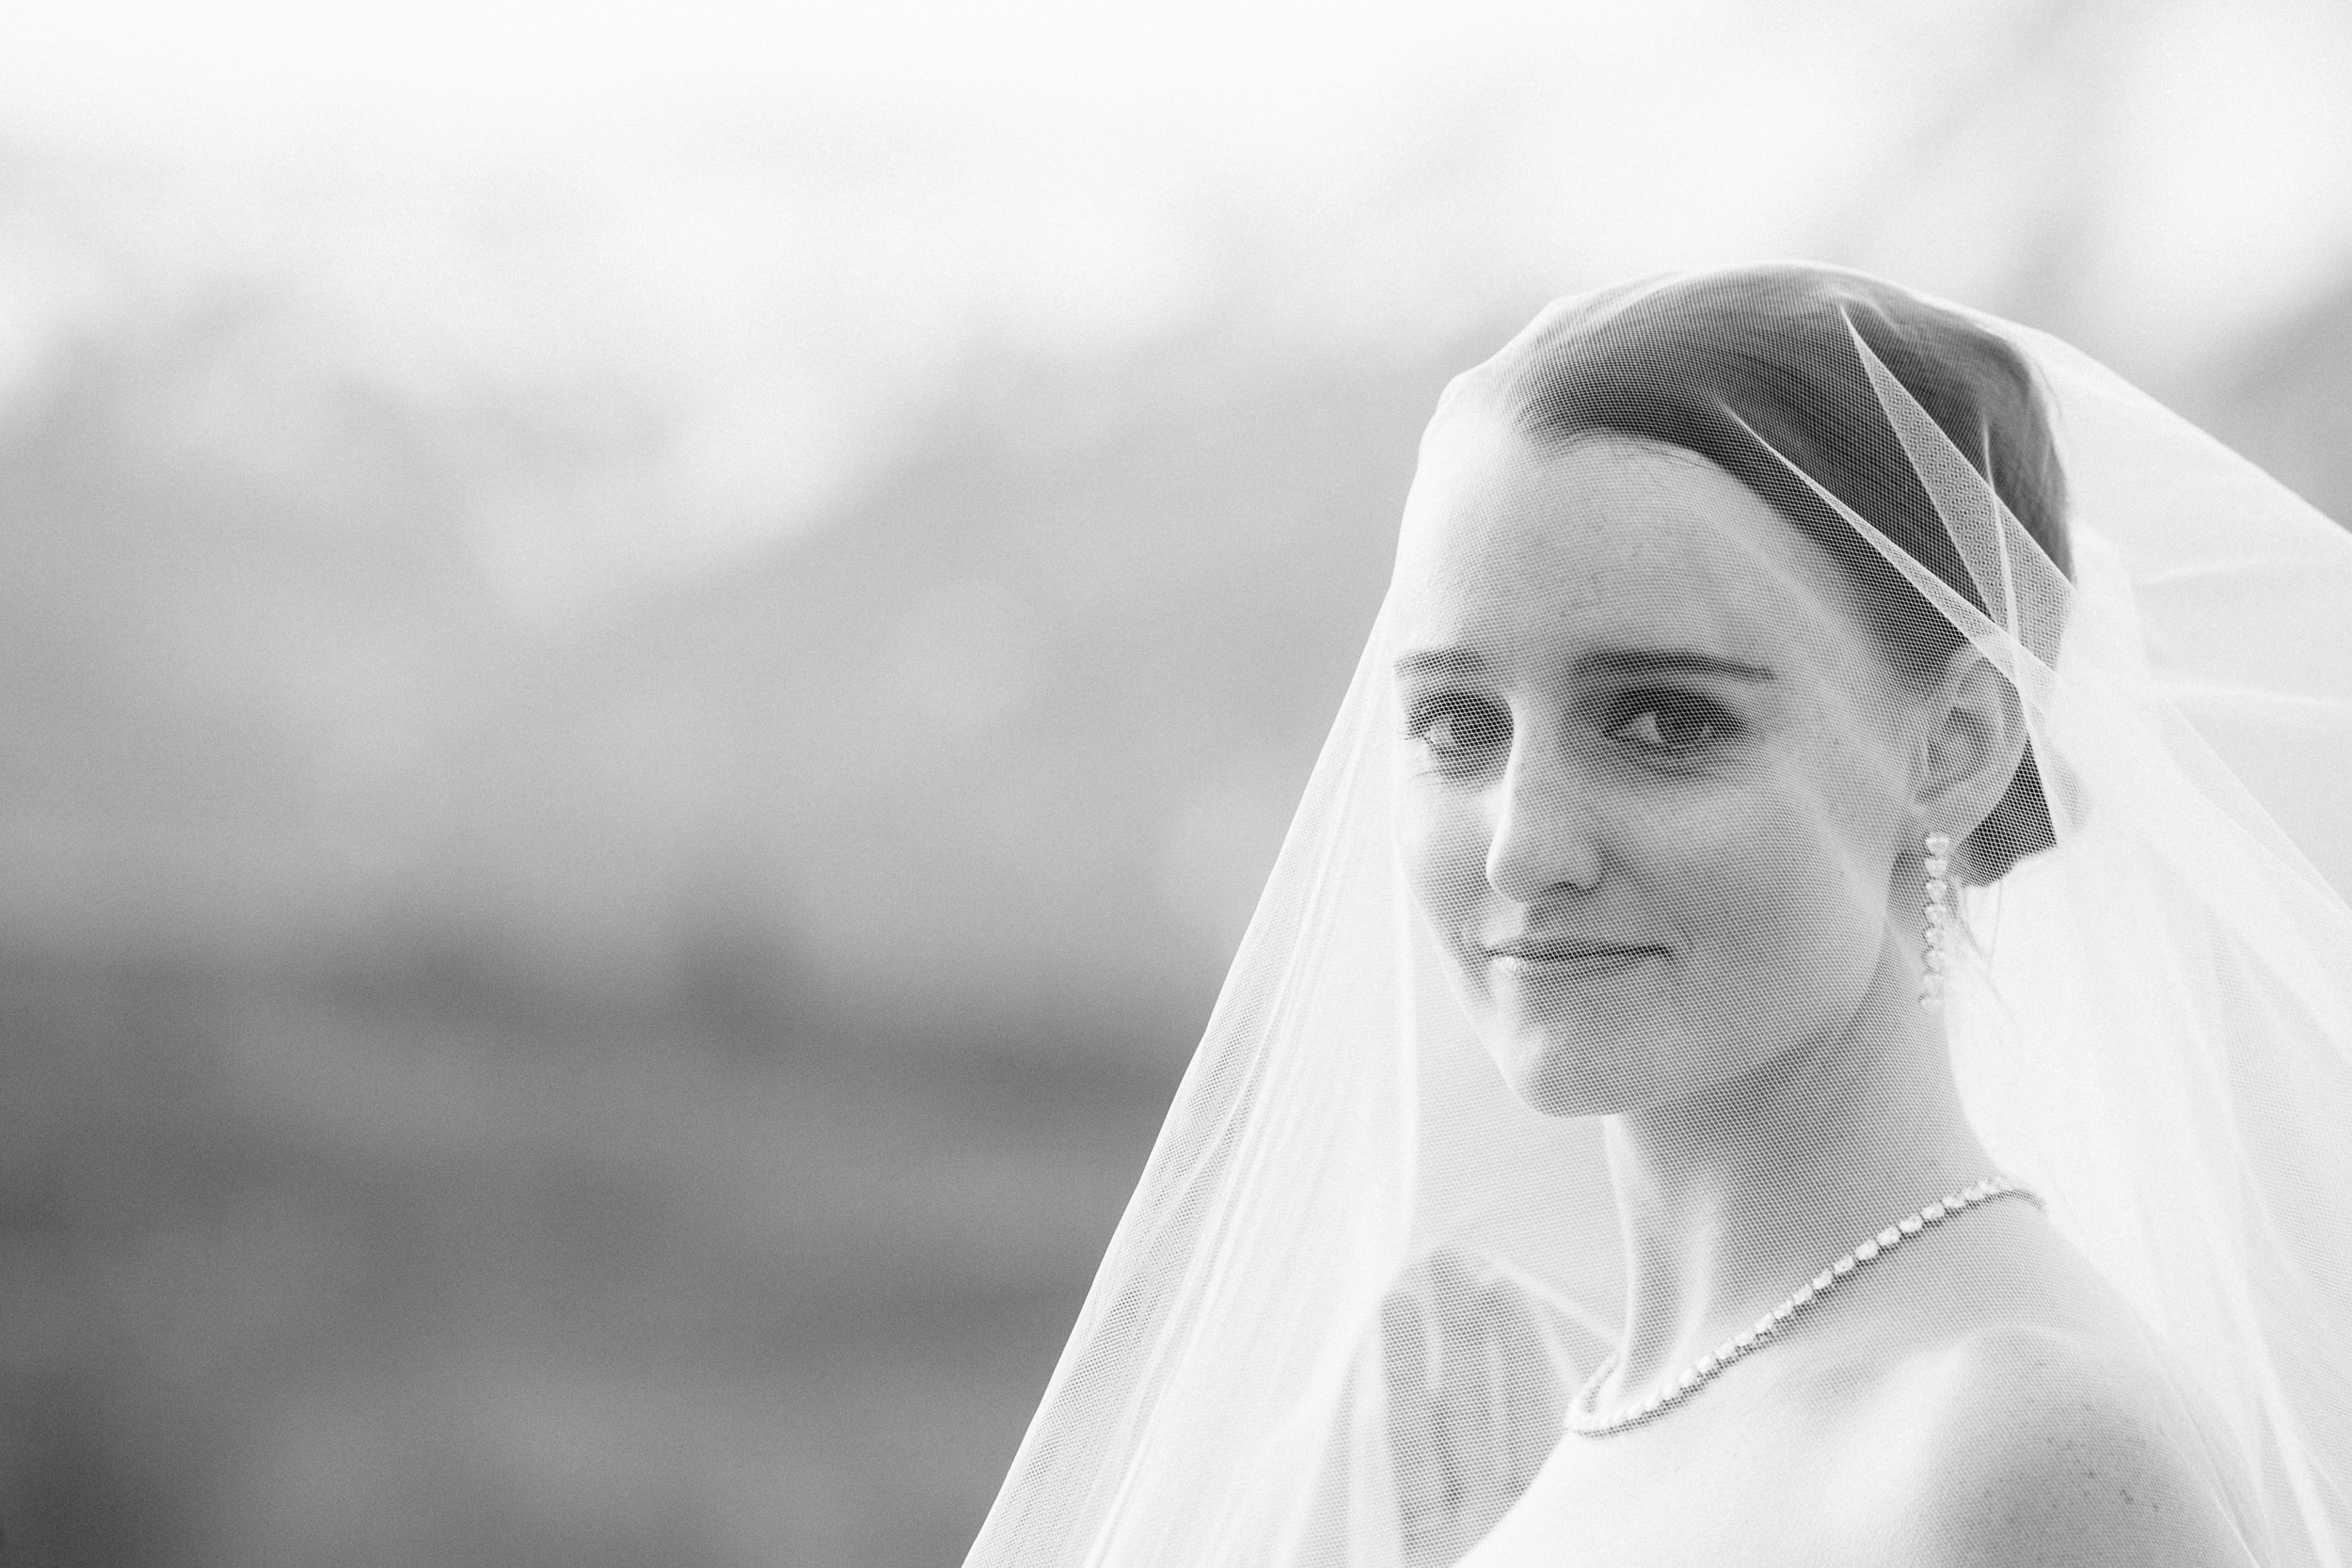 007a_The best wedding photography from Jackson Hole, Wyoming and beyond by photographer Hannah Hardaway-2.jpg